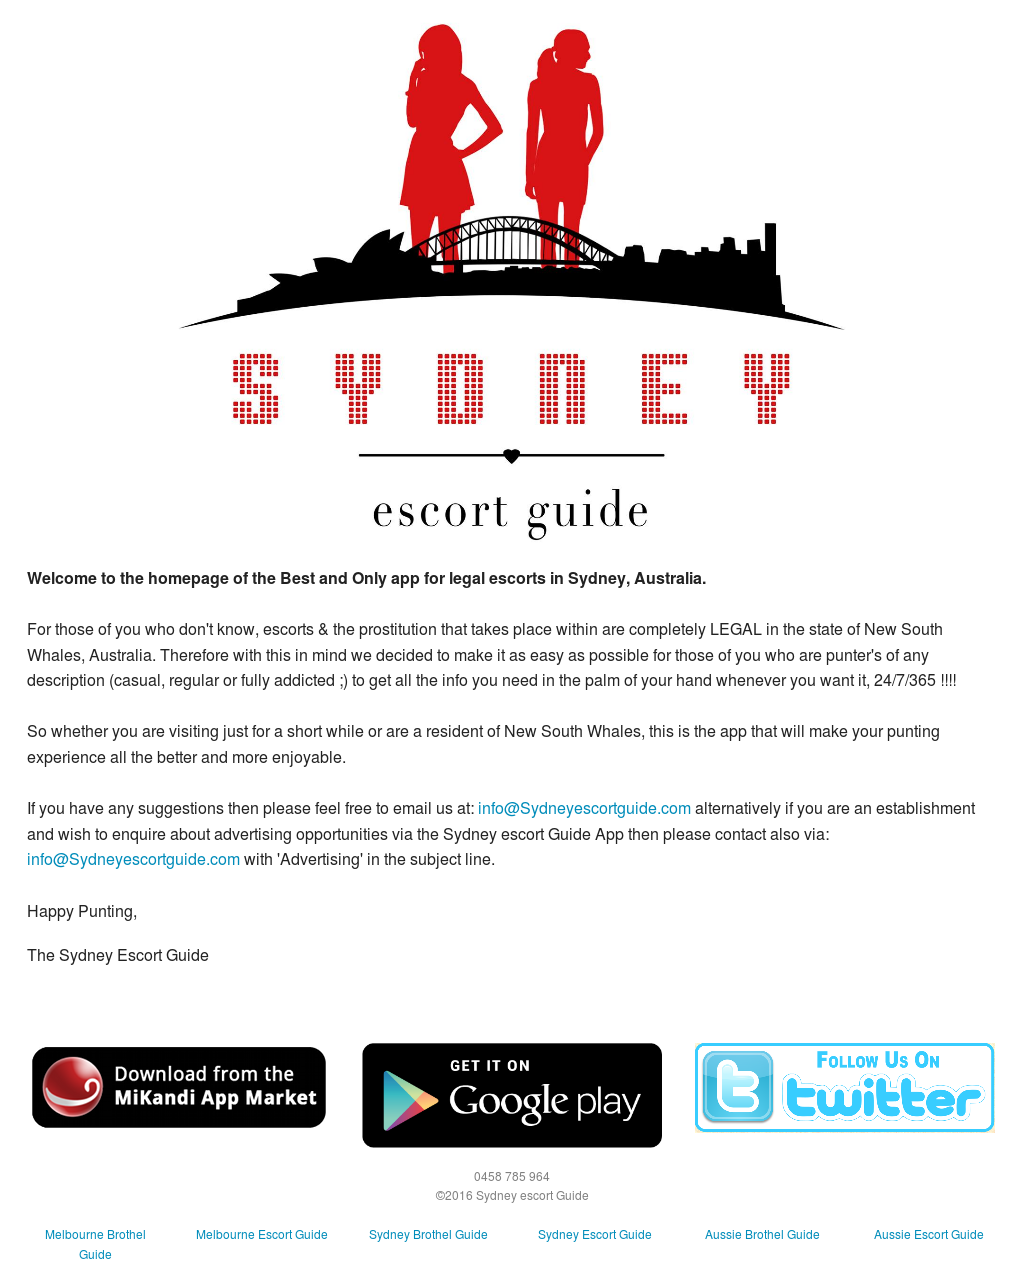 Apologise, Web escort guide something is